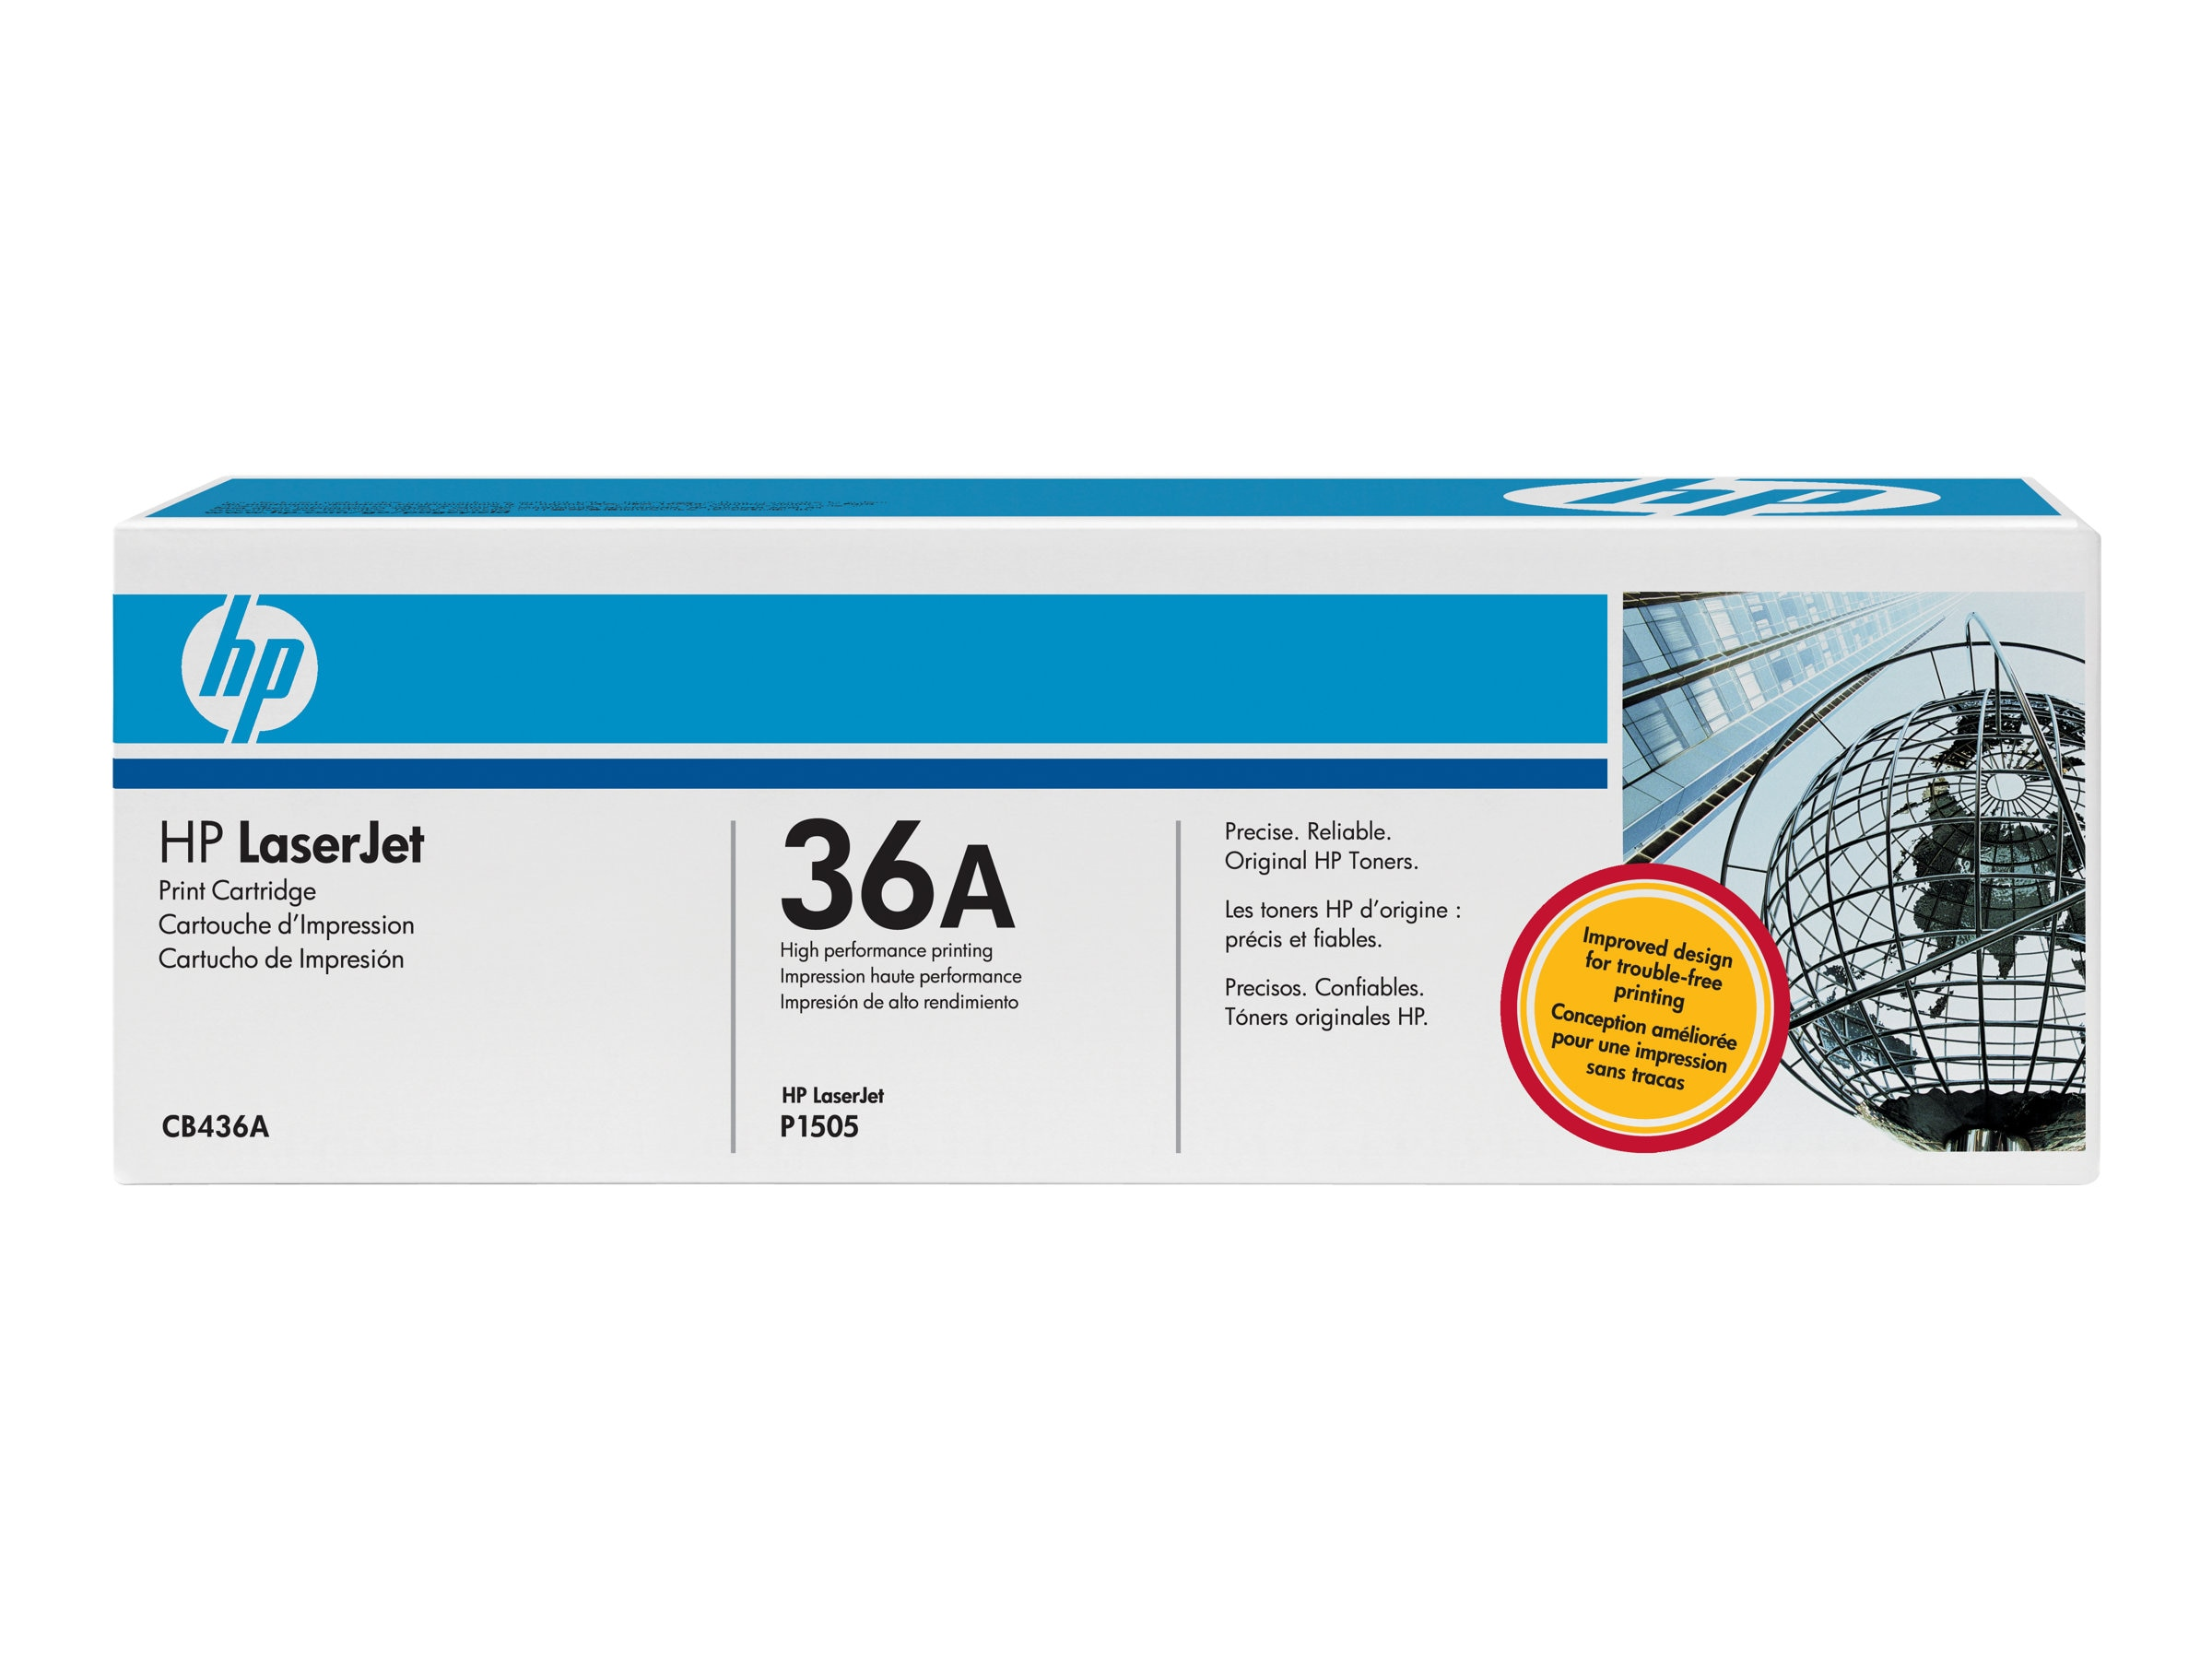 HP 36A (CB436A) Black Original LaserJet Toner Cartridge for HP LaserJet P1505 Series Printers